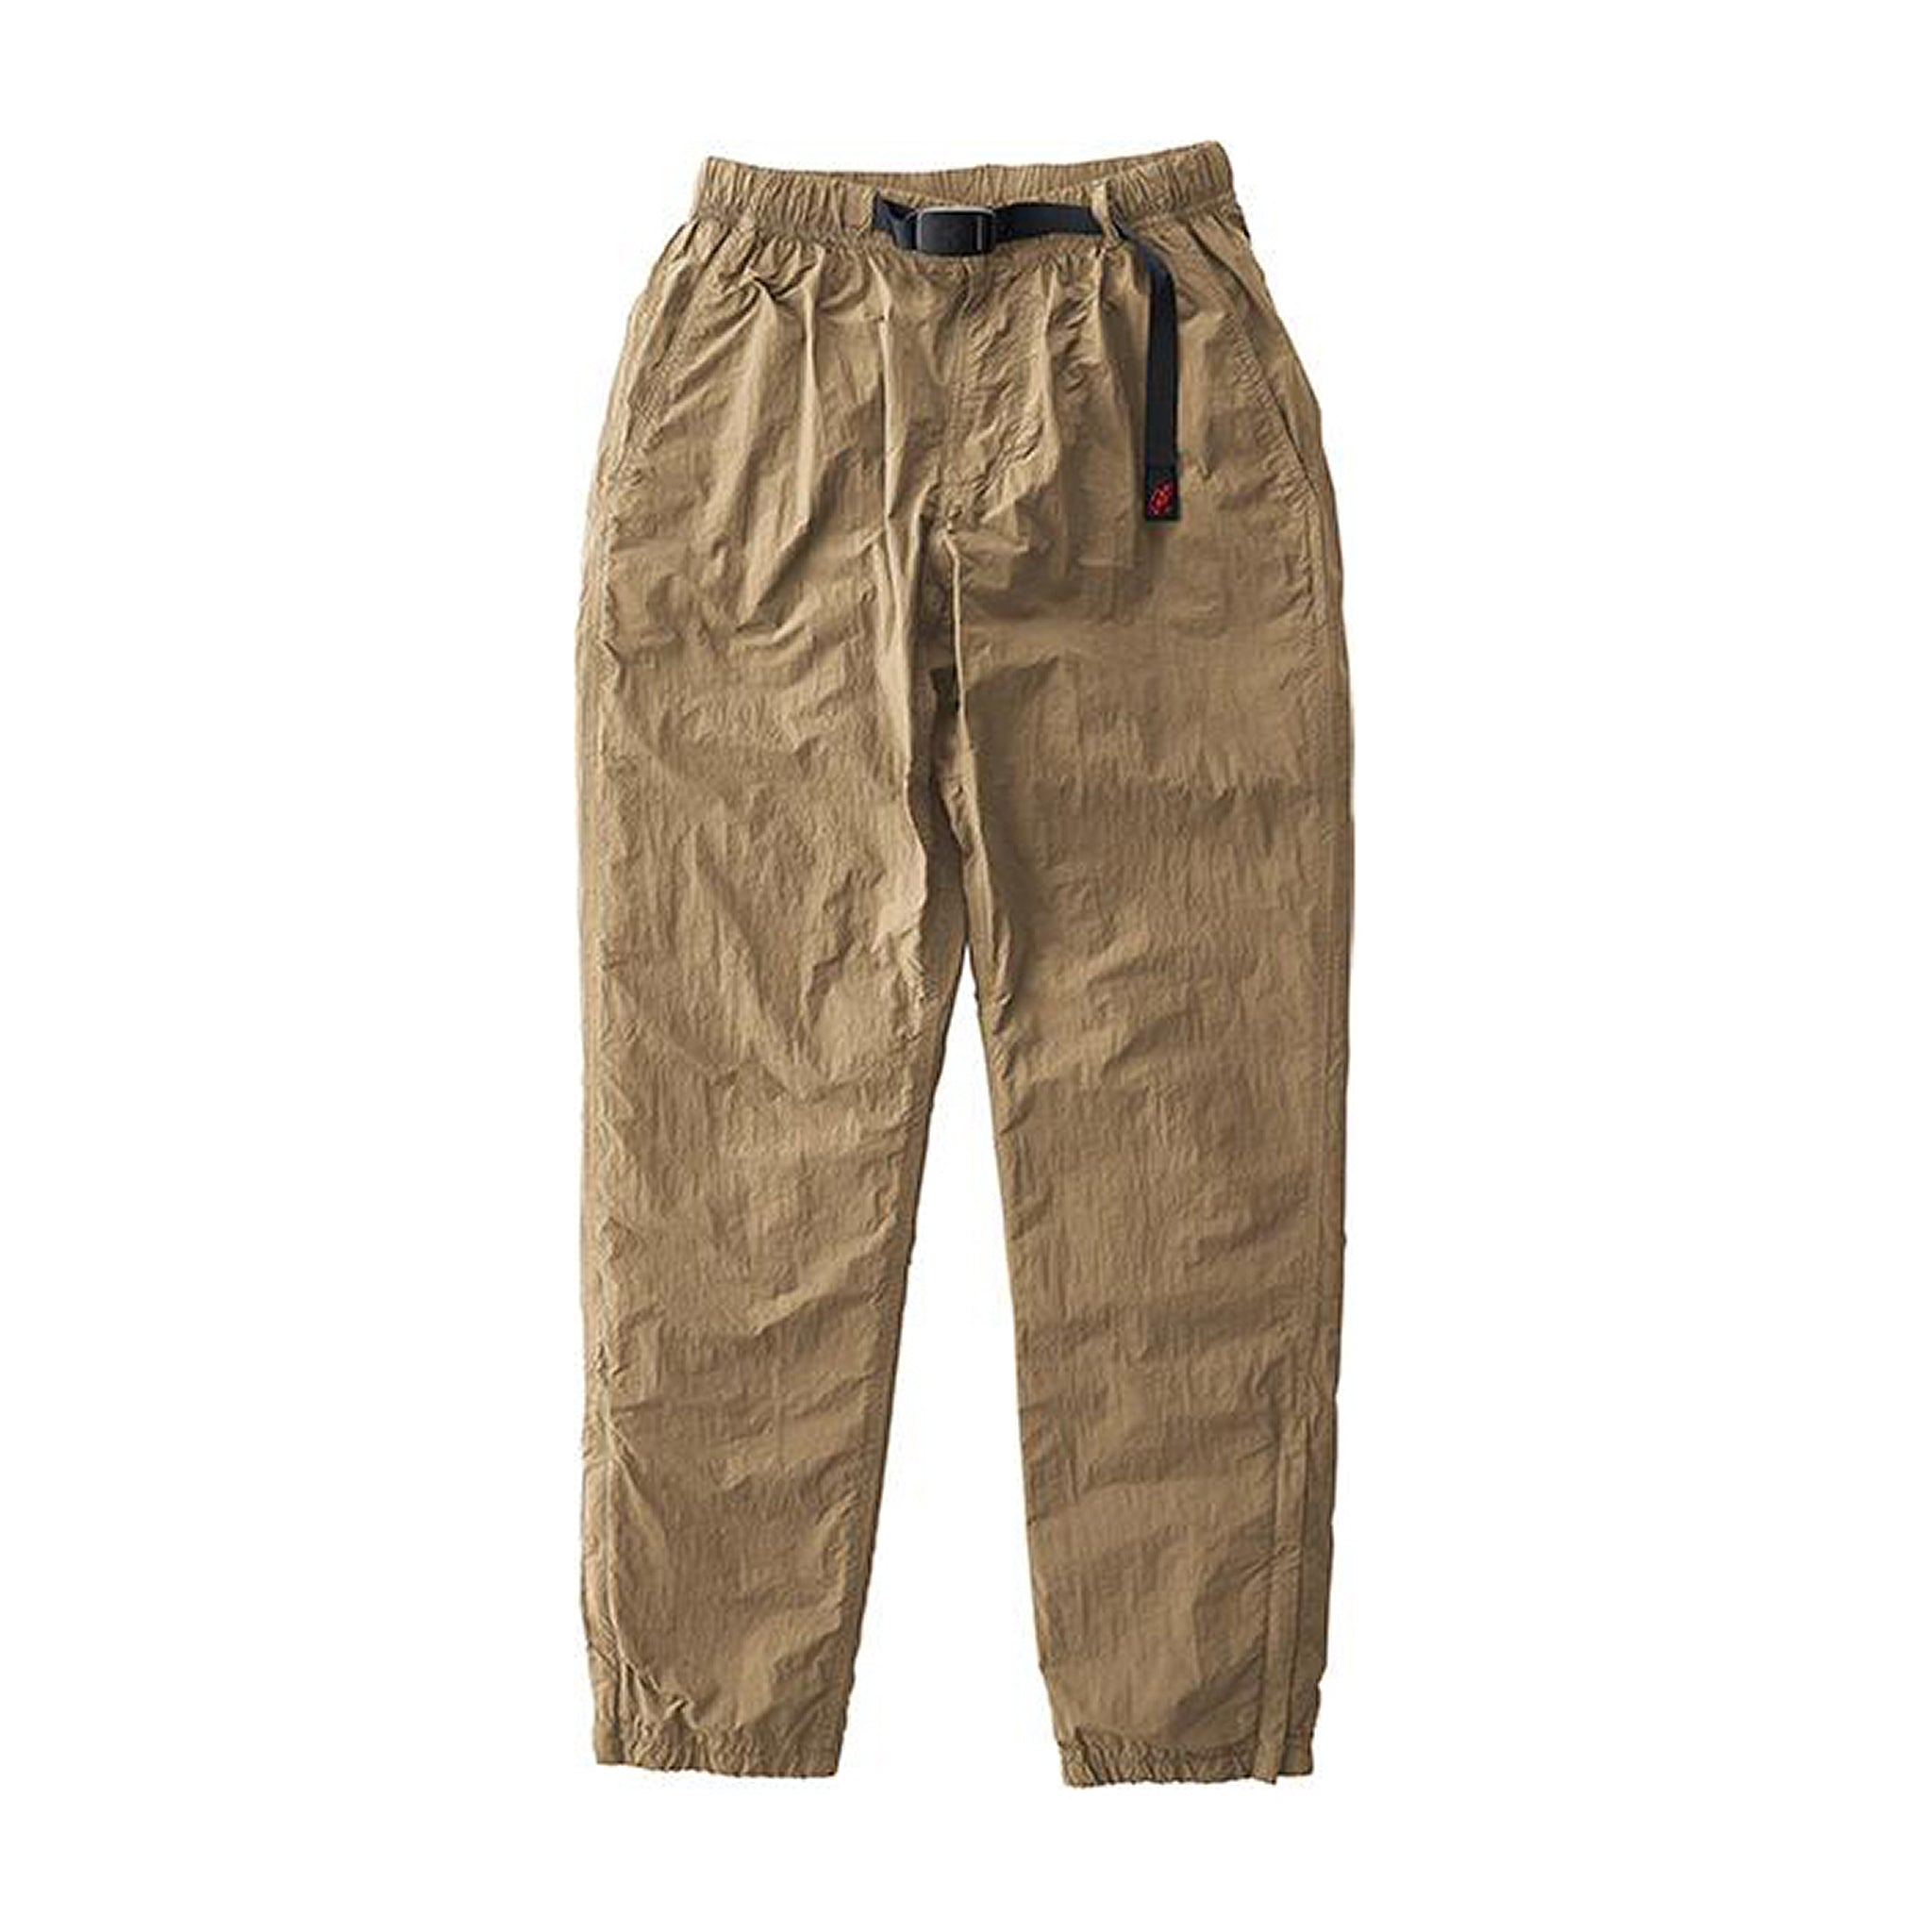 Gramicci Packable Truck Pants Tan